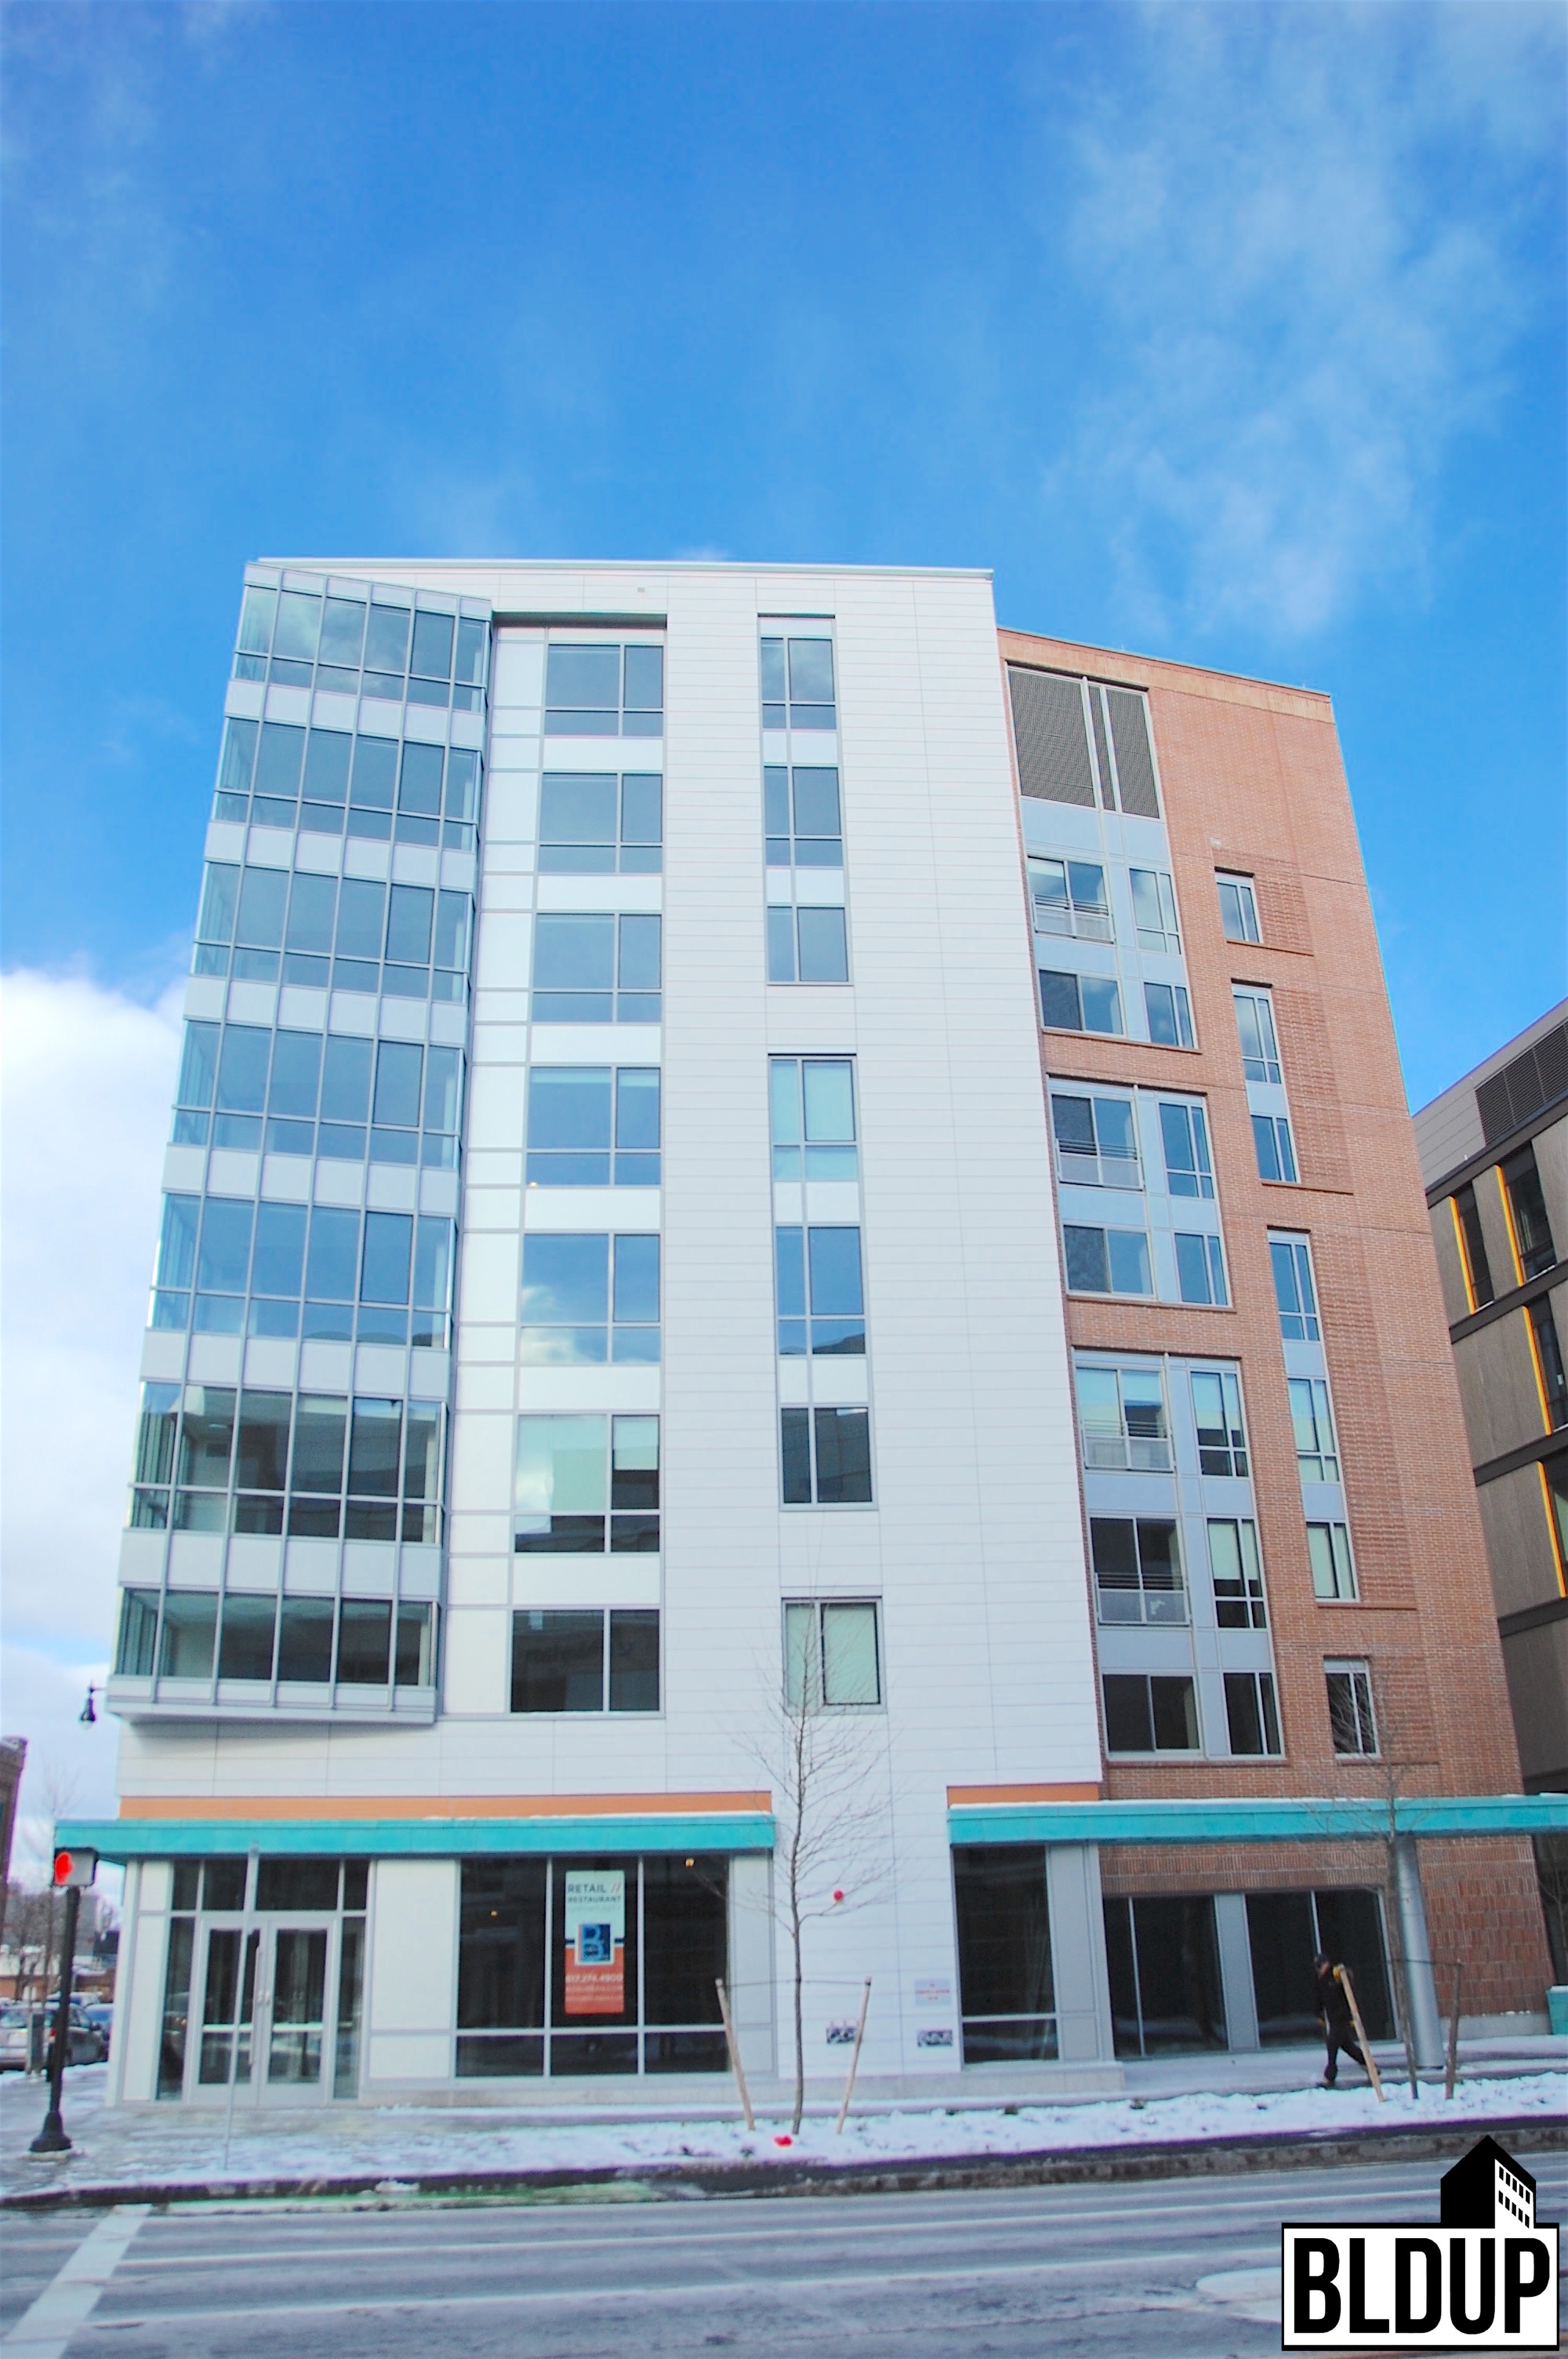 Vivo apartments 270 third street binney street kendall square residential units cambridge cambma gilbane building company construction alexandria real estate equities portfolio developer dimella shaffer architect wsp group engineer 4